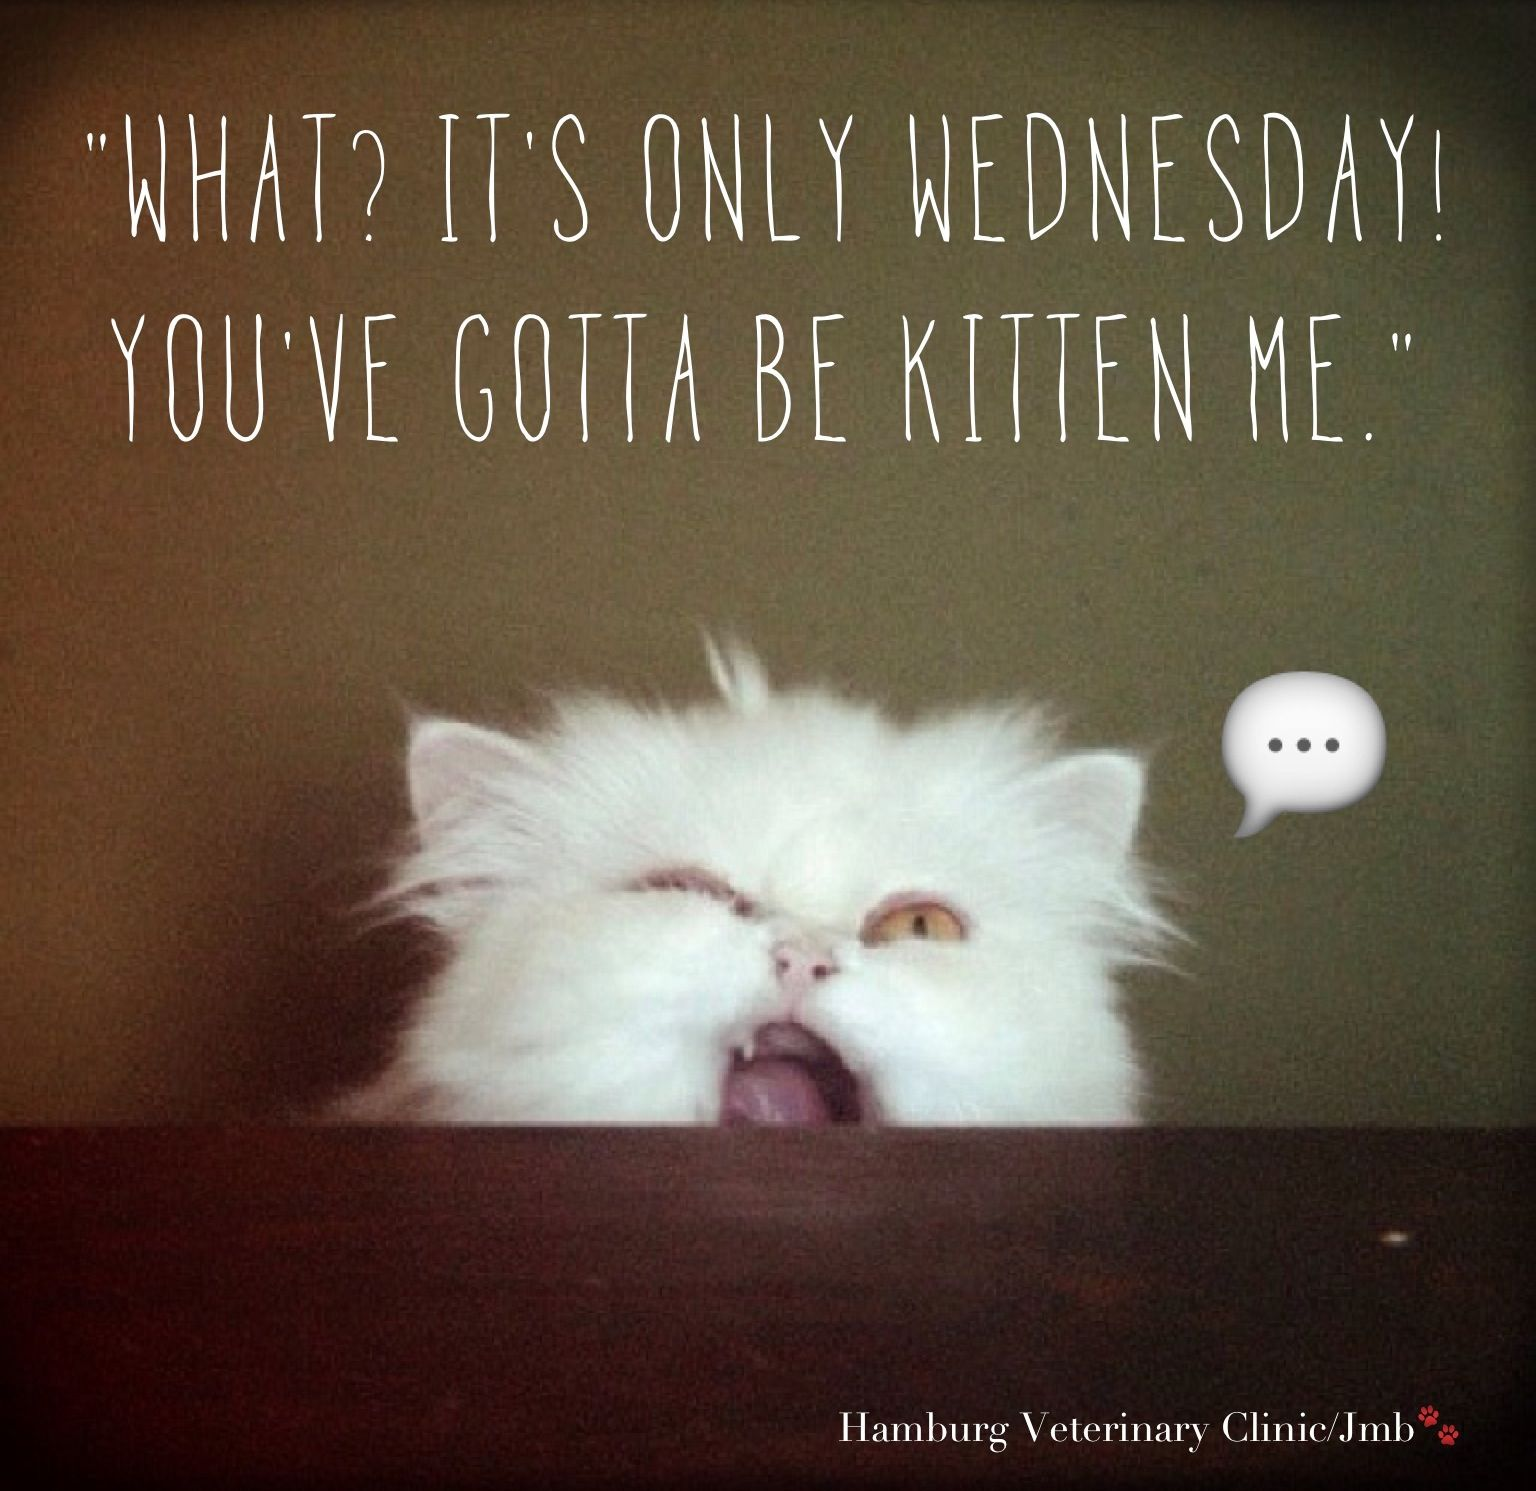 Wednesday funny - Animal Humor: What? It's only Wednesday ...